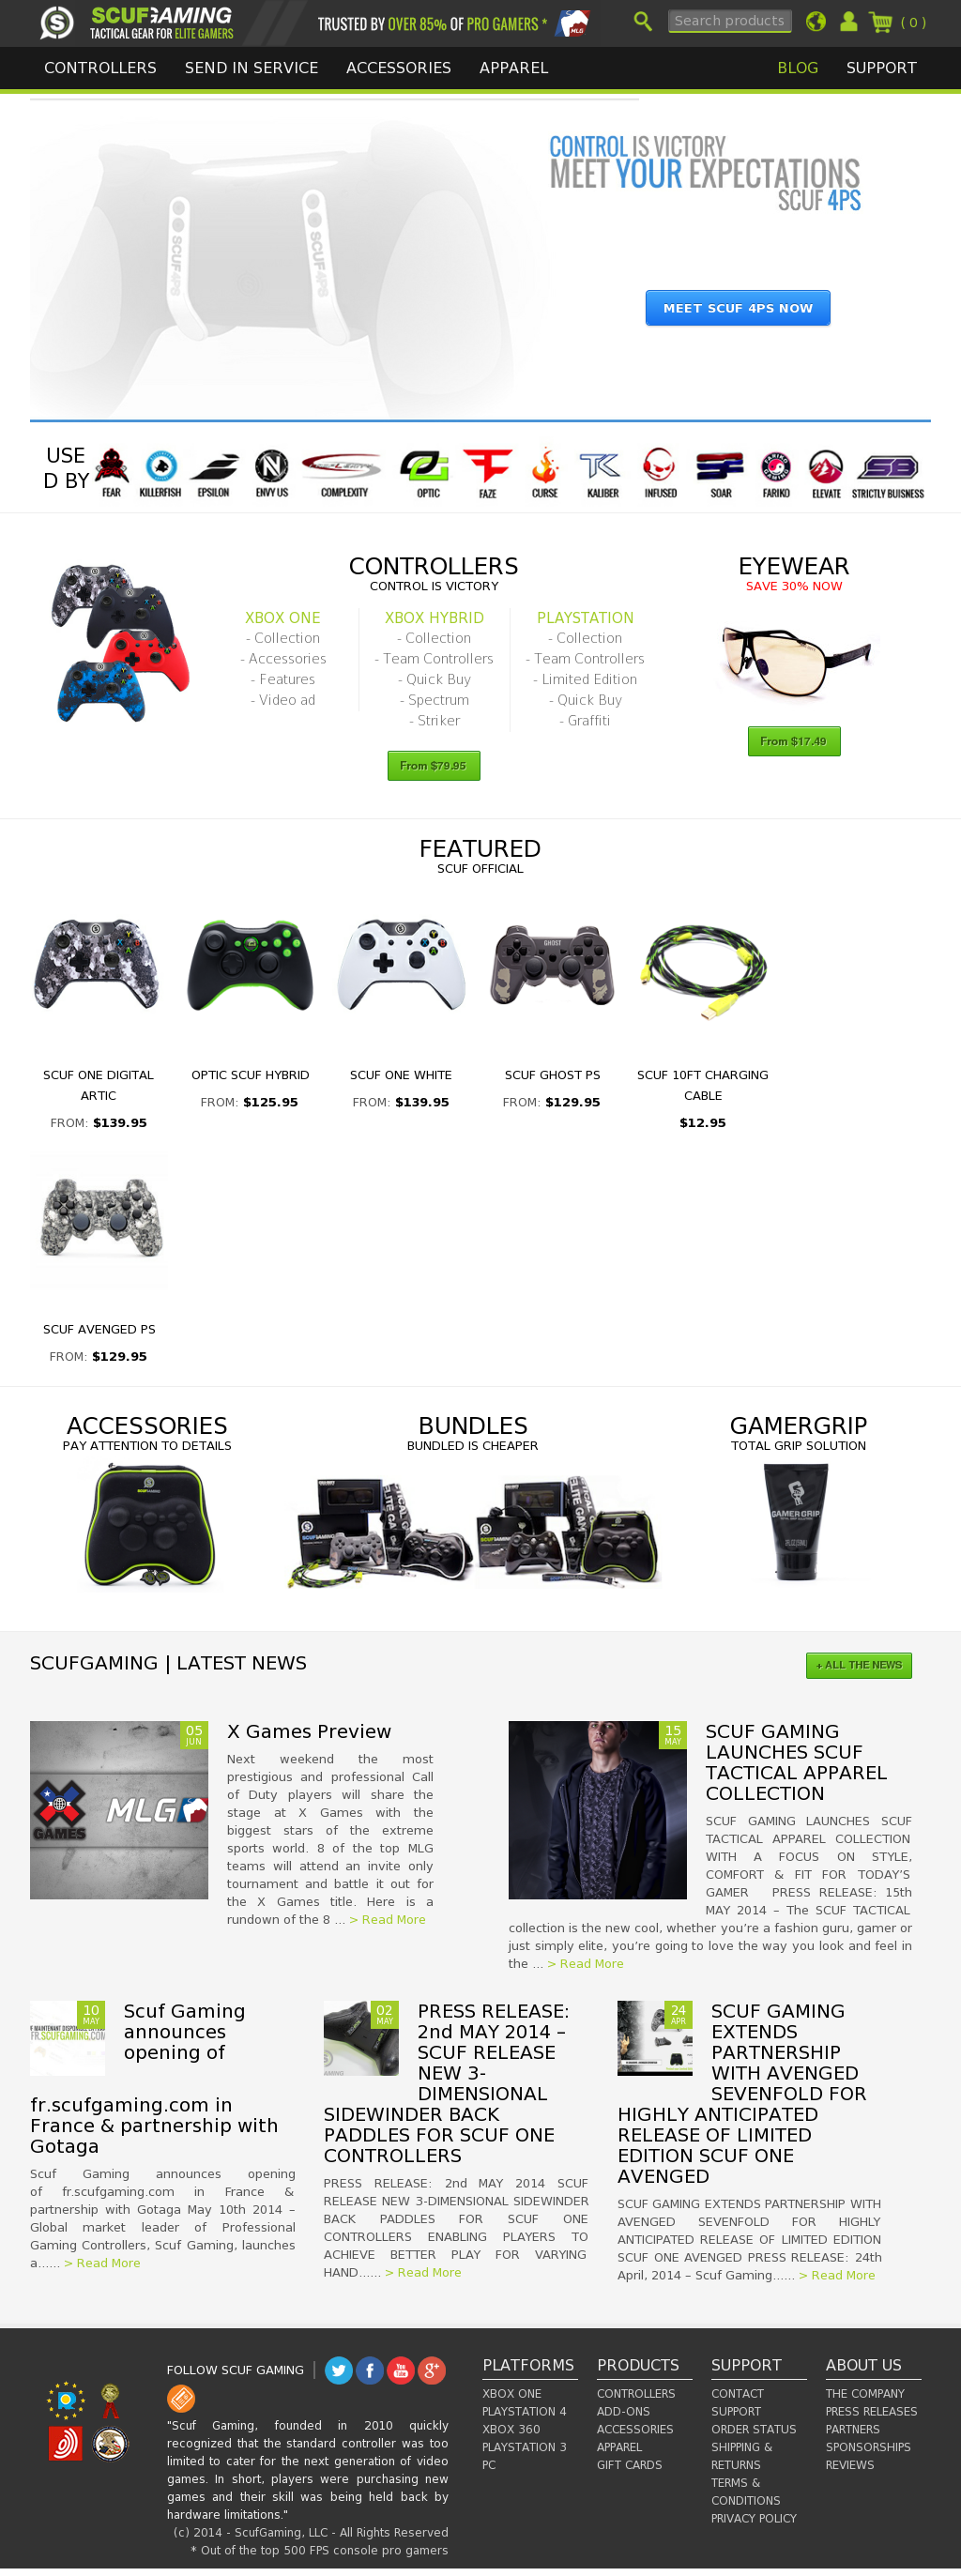 ScufGaming Competitors, Revenue and Employees - Owler